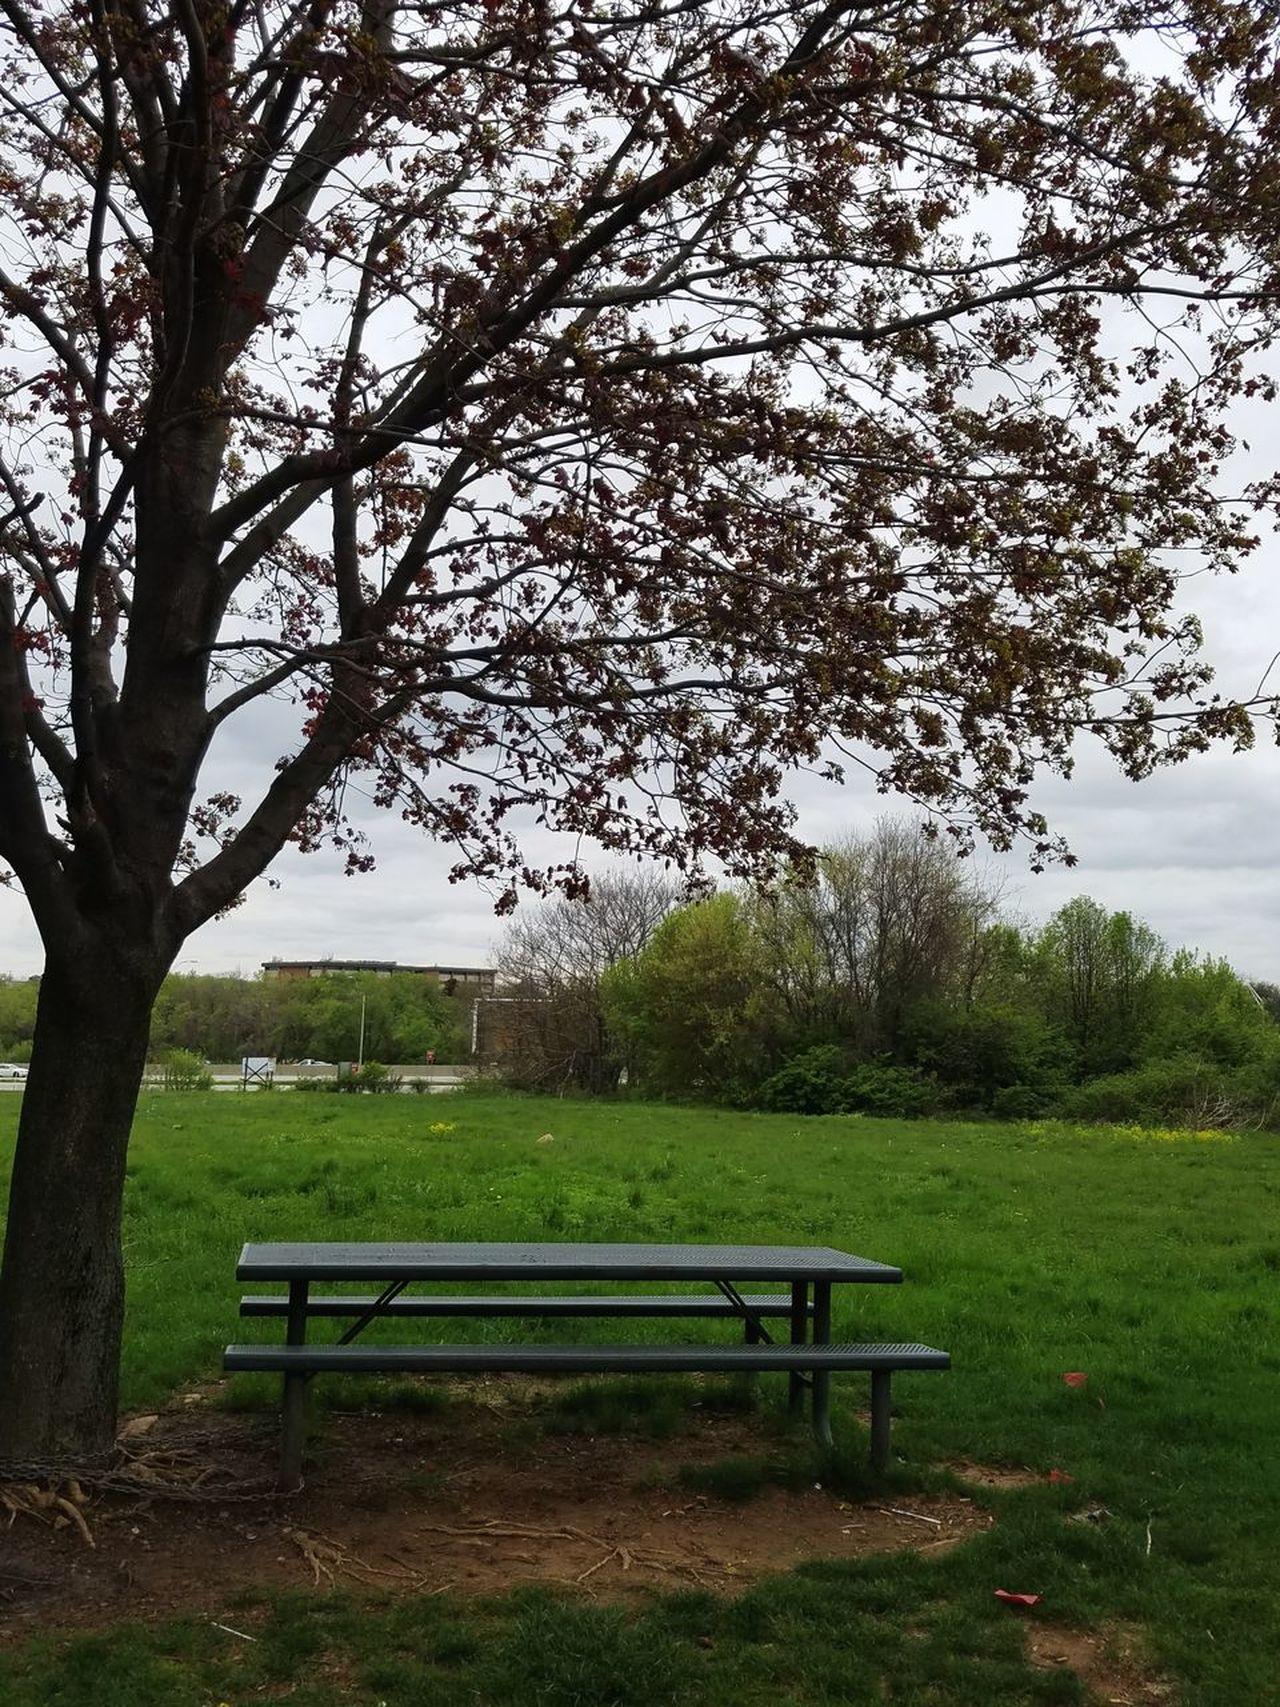 Take a seat Tree Nature Beauty In Nature Tranquility No People Growth Field Outdoors Freshness Day Grass Sky Picnic Table Relax Have A Seat Quiet